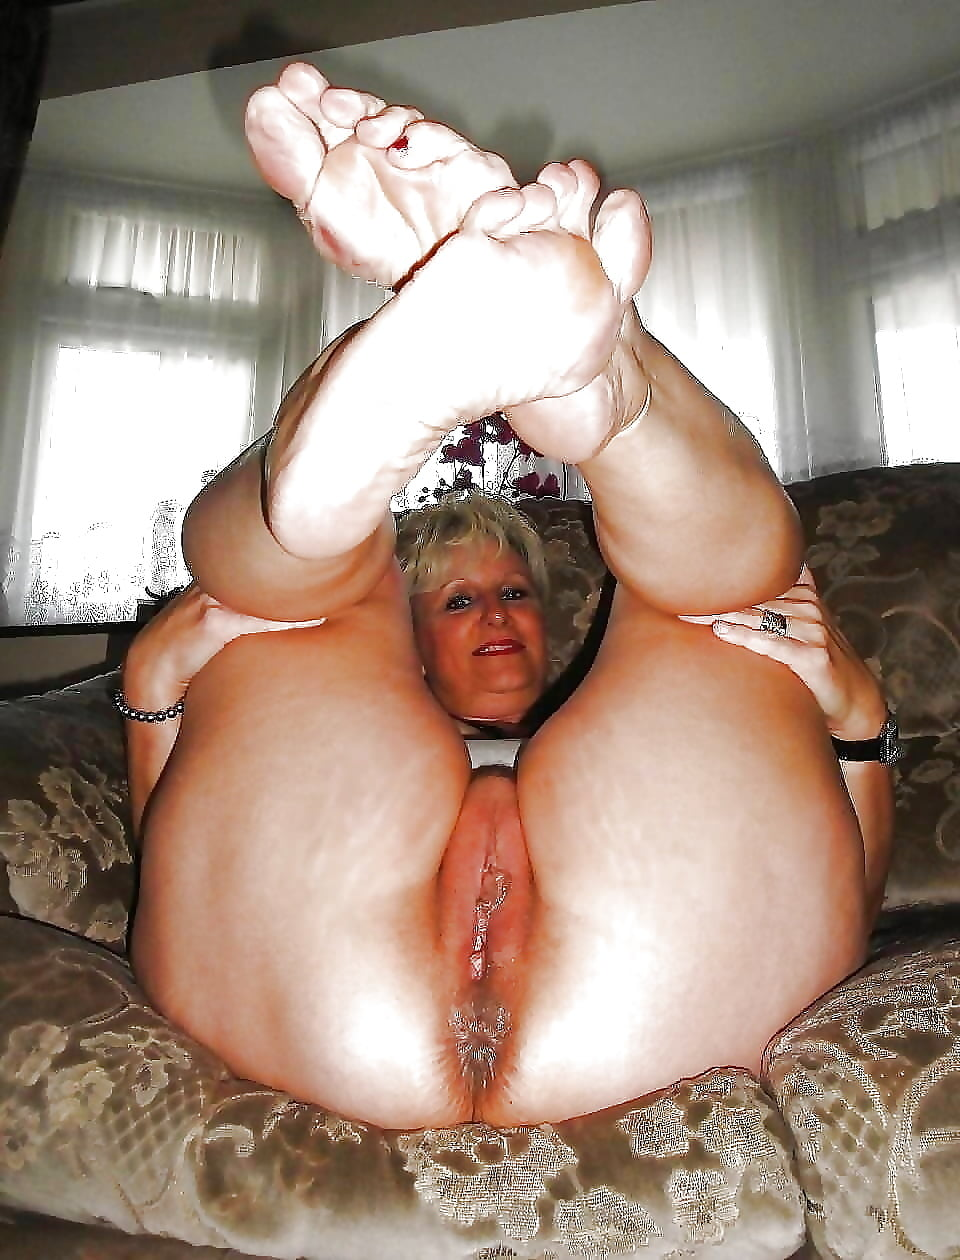 Hot granny porn pictures and vids